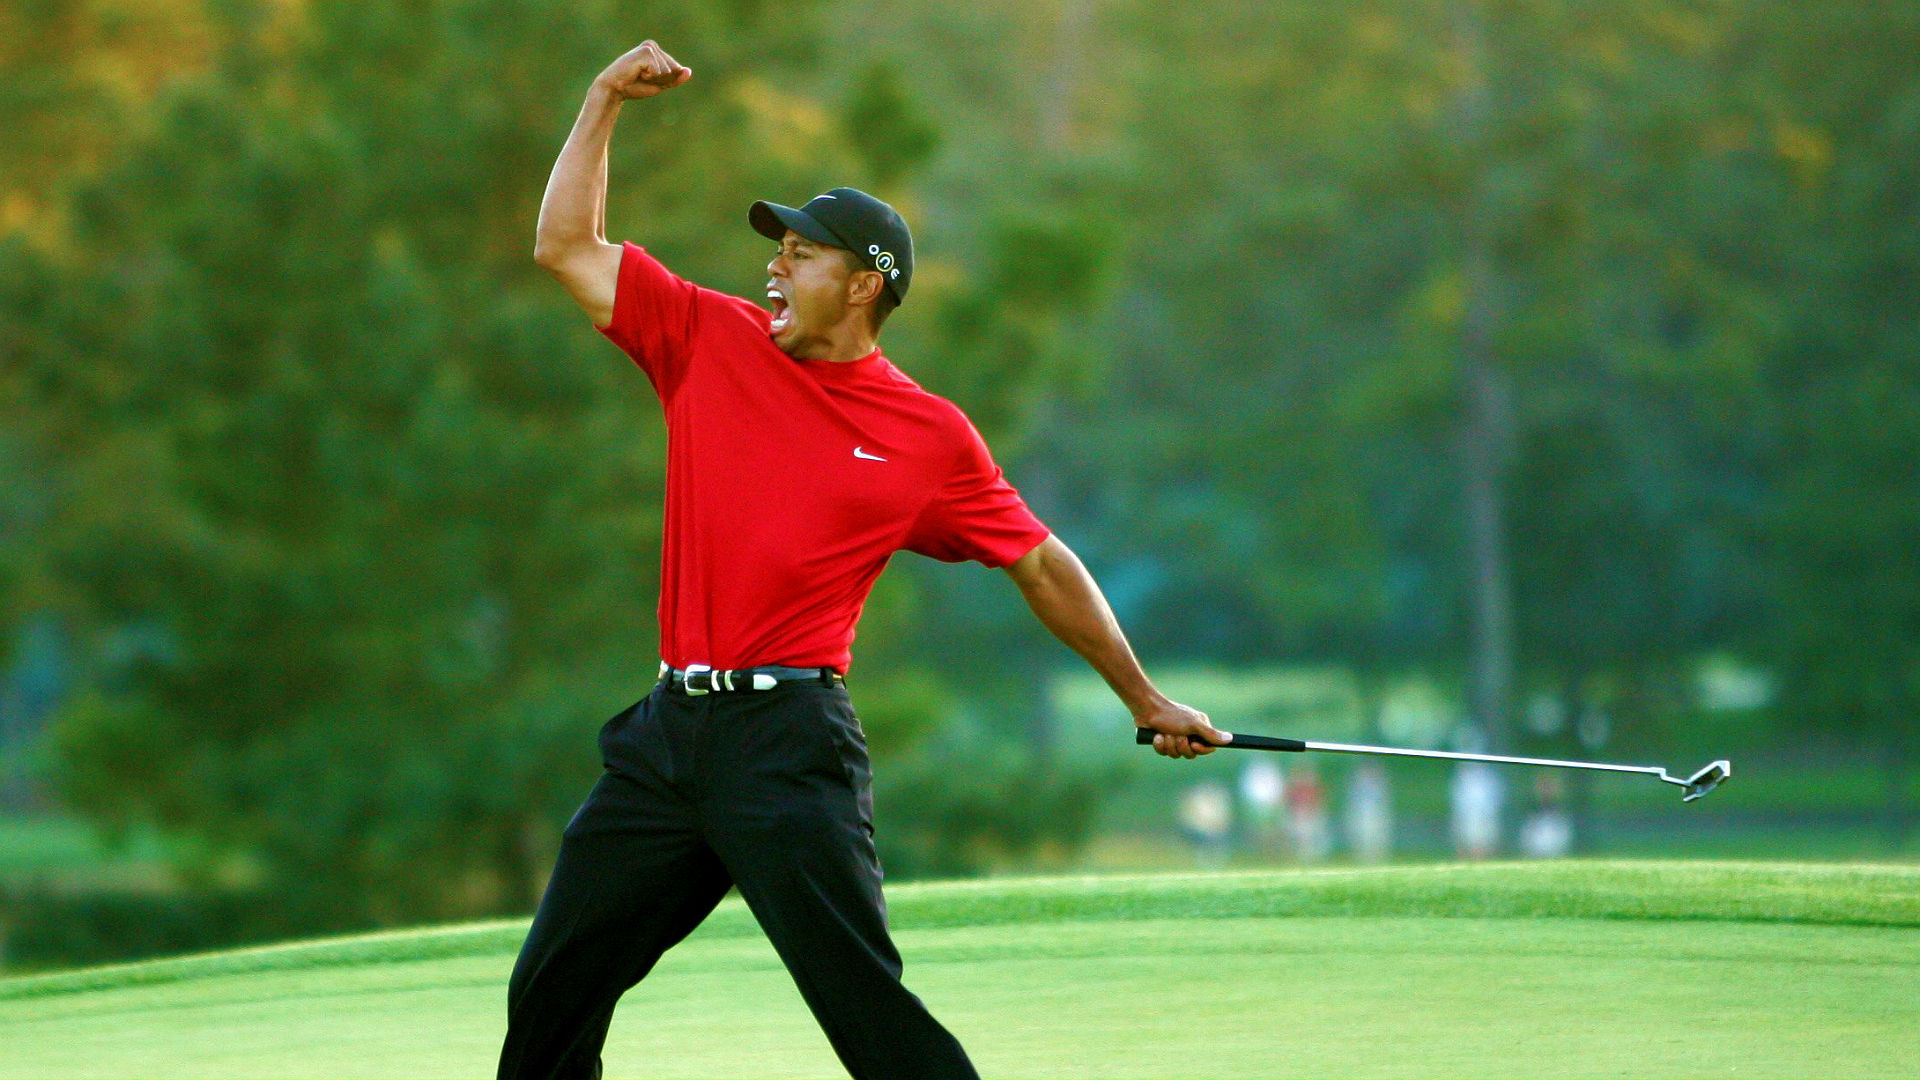 tiger woods u0026 39  history and wins at the masters